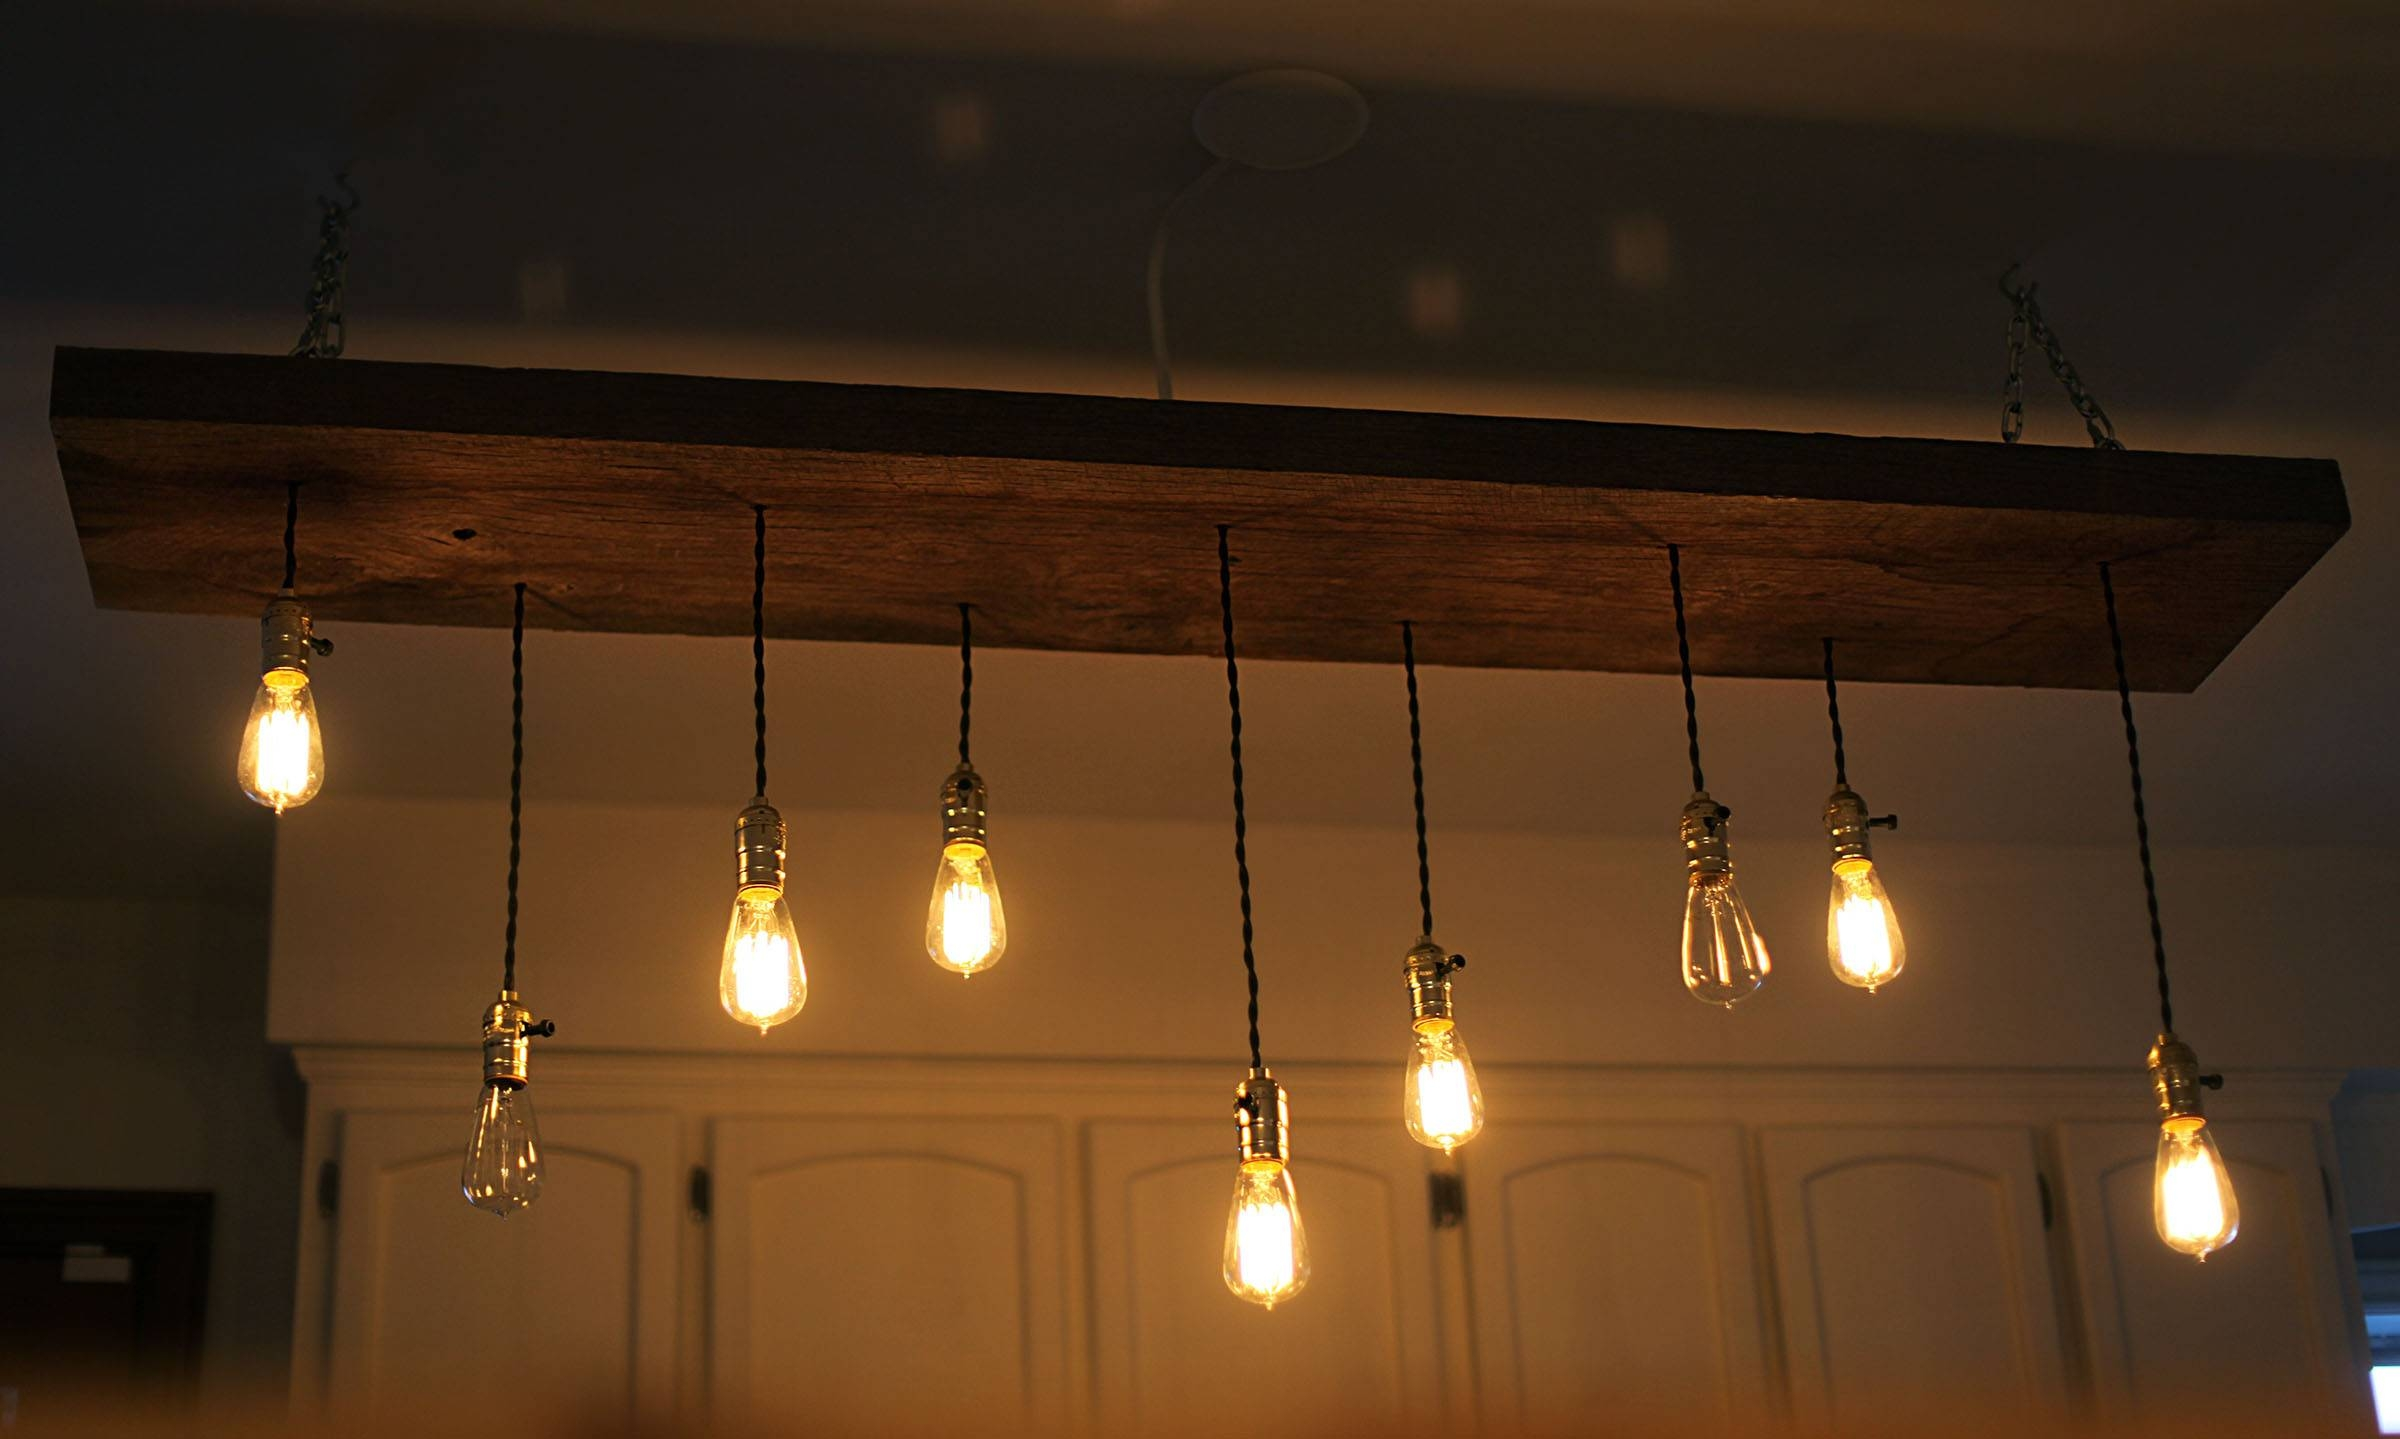 Diy Reclaimed Lumber Hanging Edison Bulb Chandelier | Unmaintained With Edison Bulb Pendant Lights (View 9 of 15)